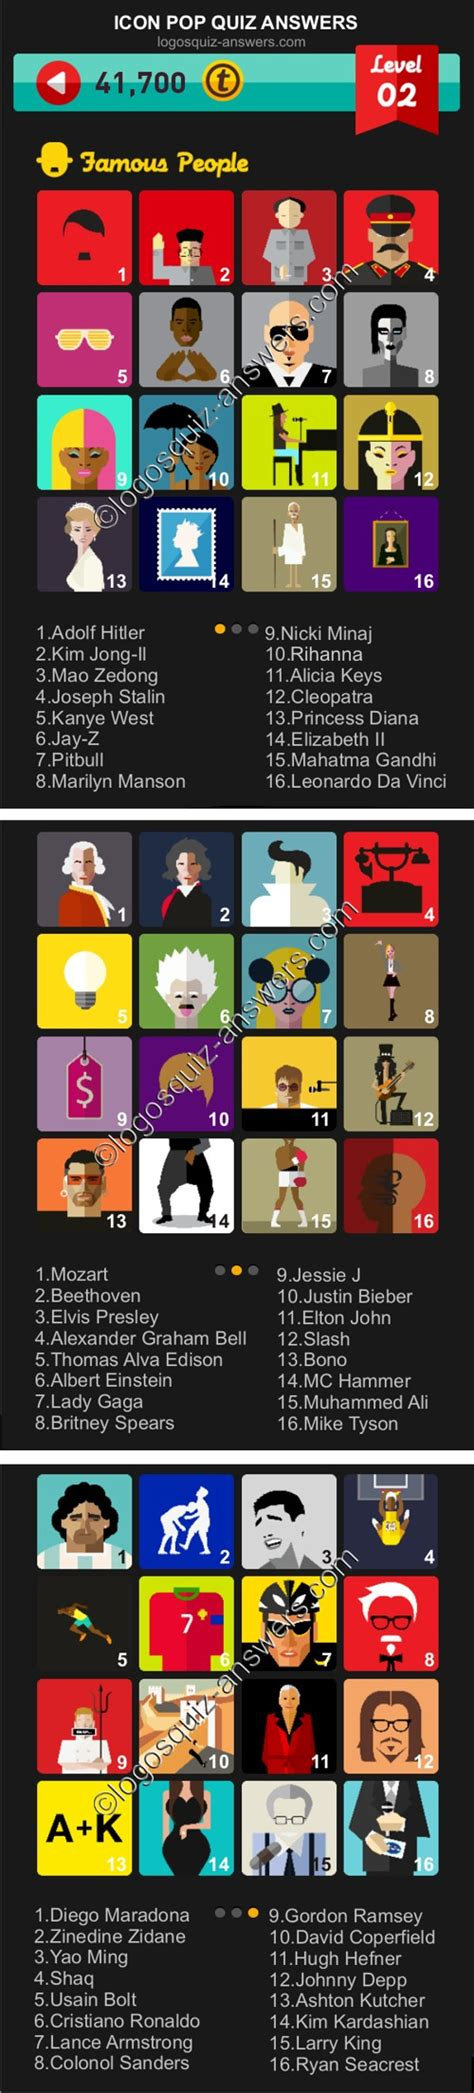 celeb pop quiz answers famous people level 2 cheats for iphone and android icon